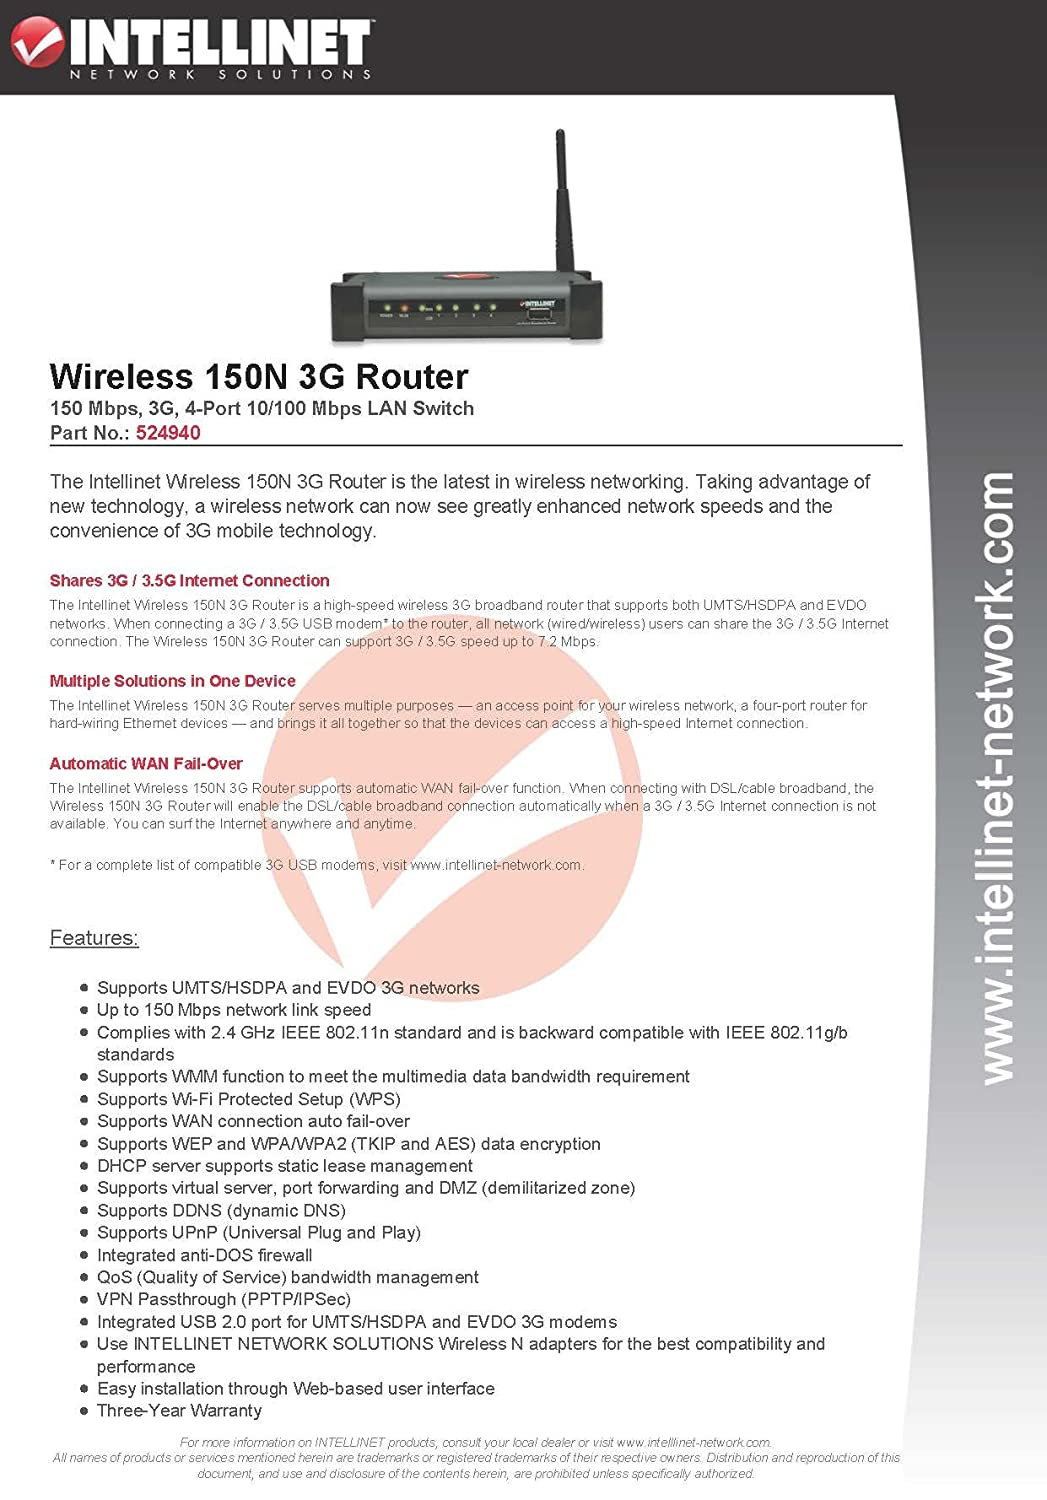 Intellinet Wireless Up To 150 Mbps Network Link Speed 3g Diagram Router 524940 Electronics